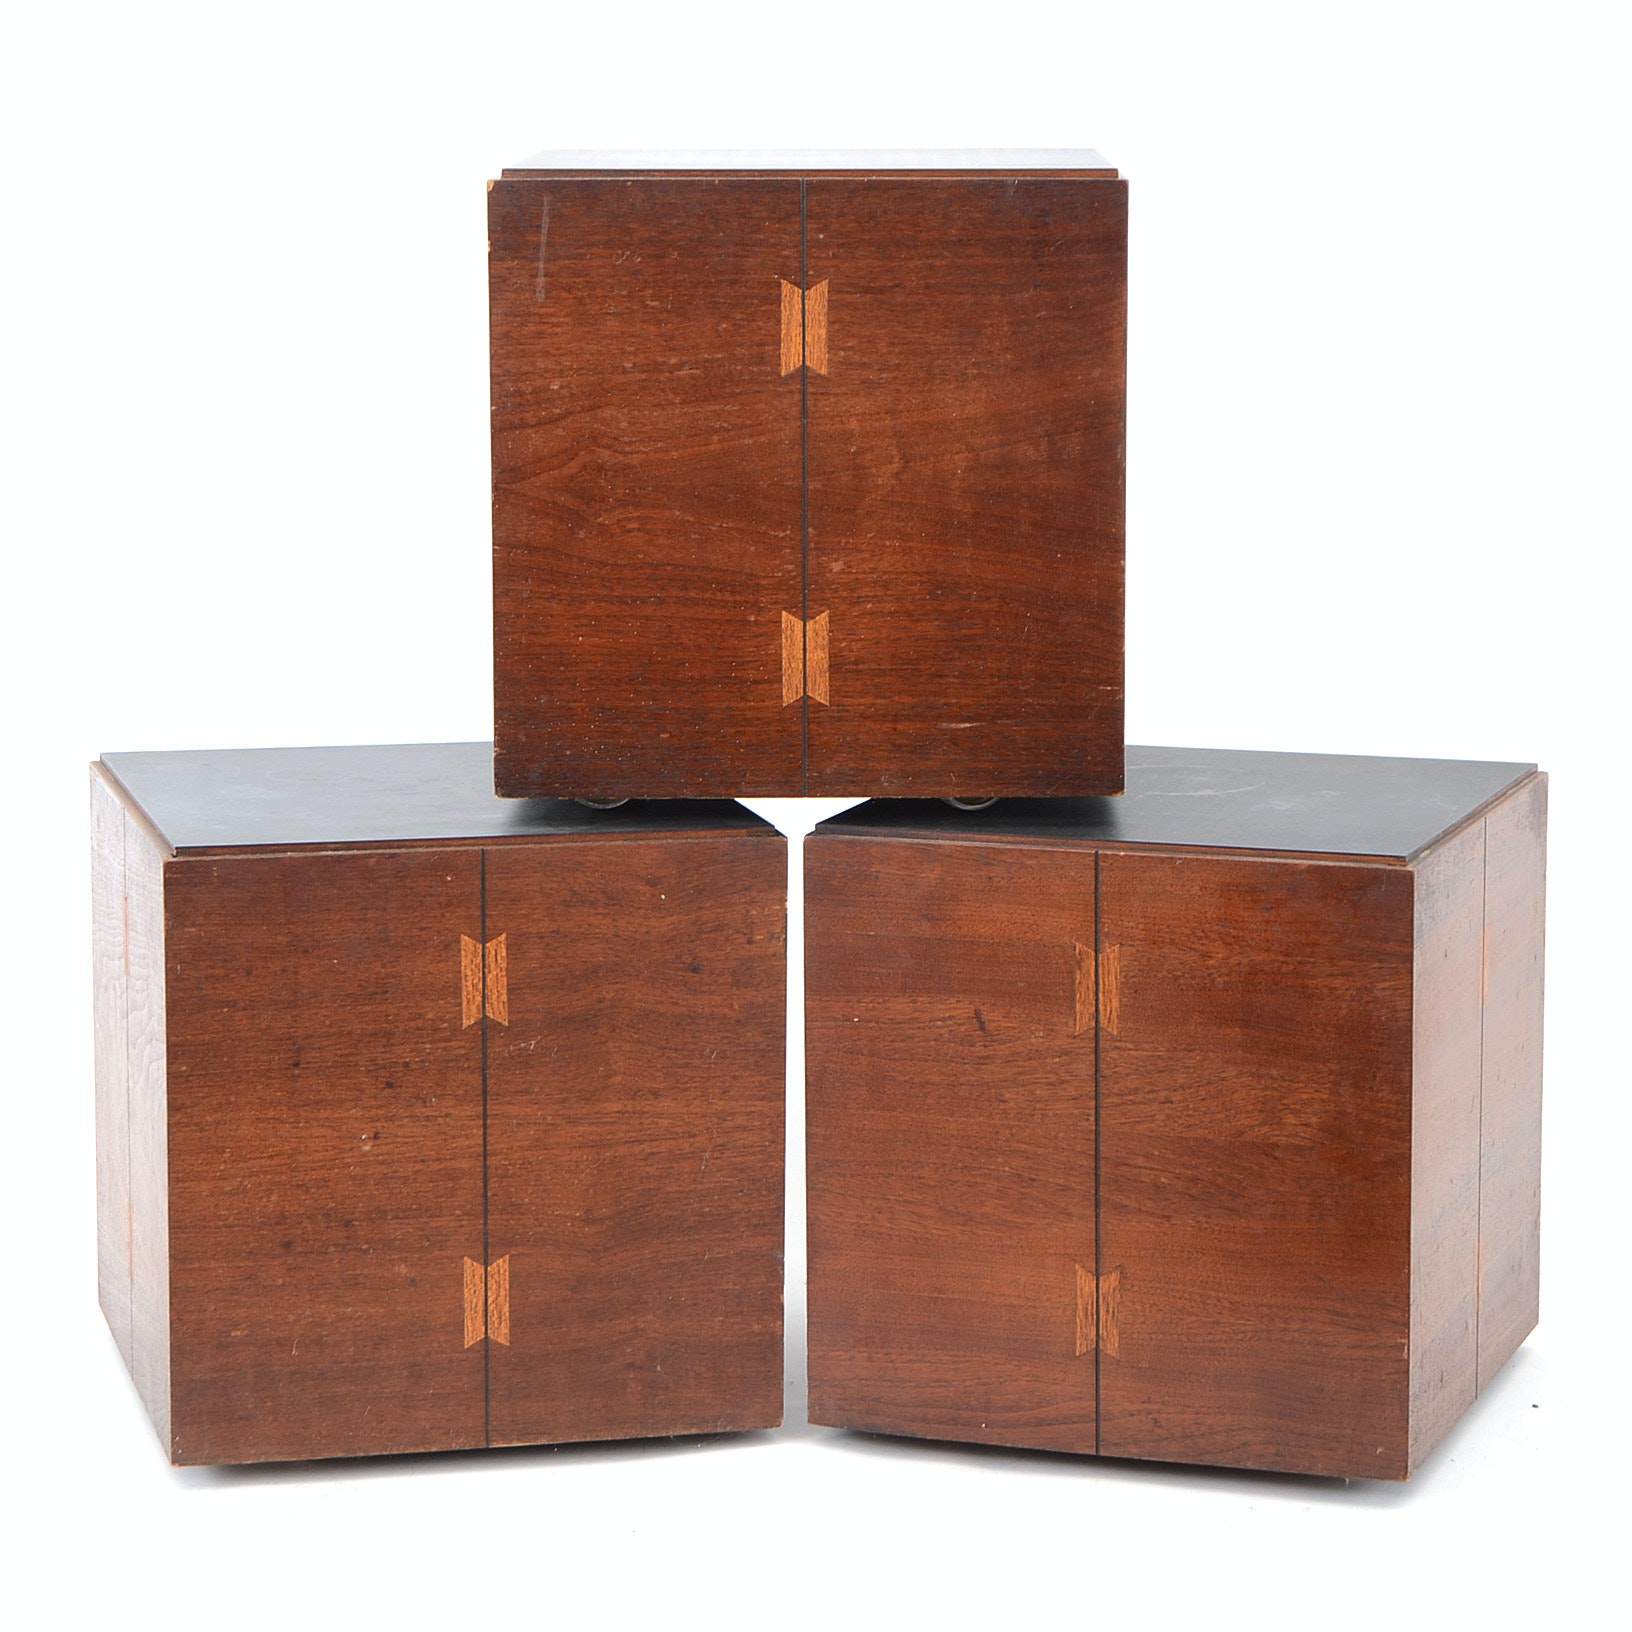 Three Mid Century Modern Cube Tables by Lane